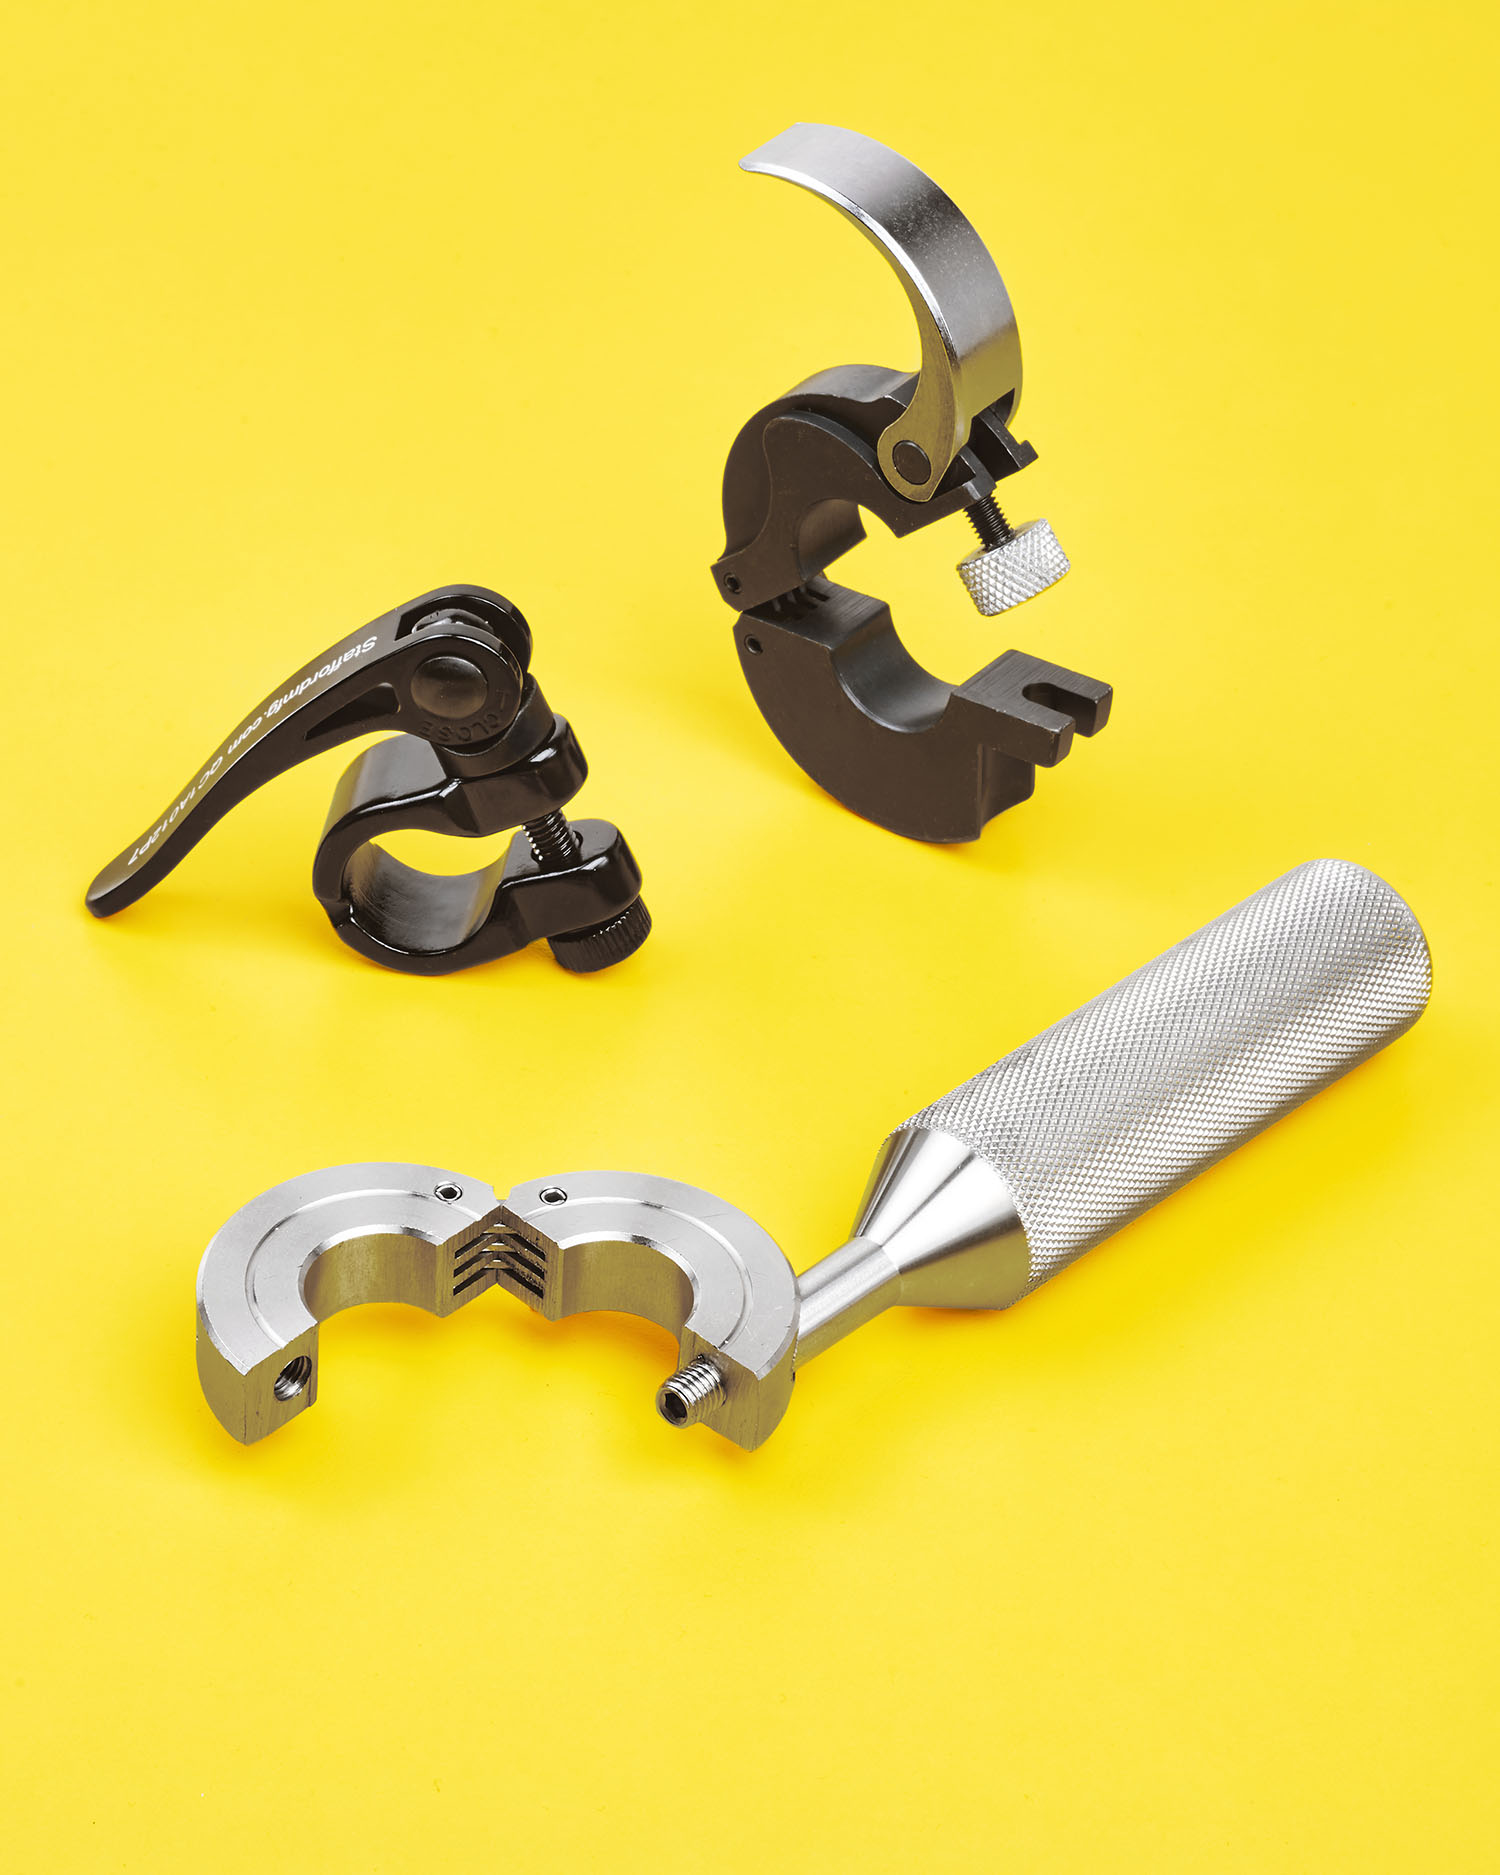 QUICK-RELEASE CLAMP COLLARS 3 DESIGNS ATTACH & ADJUST WITHOUT TOOLS